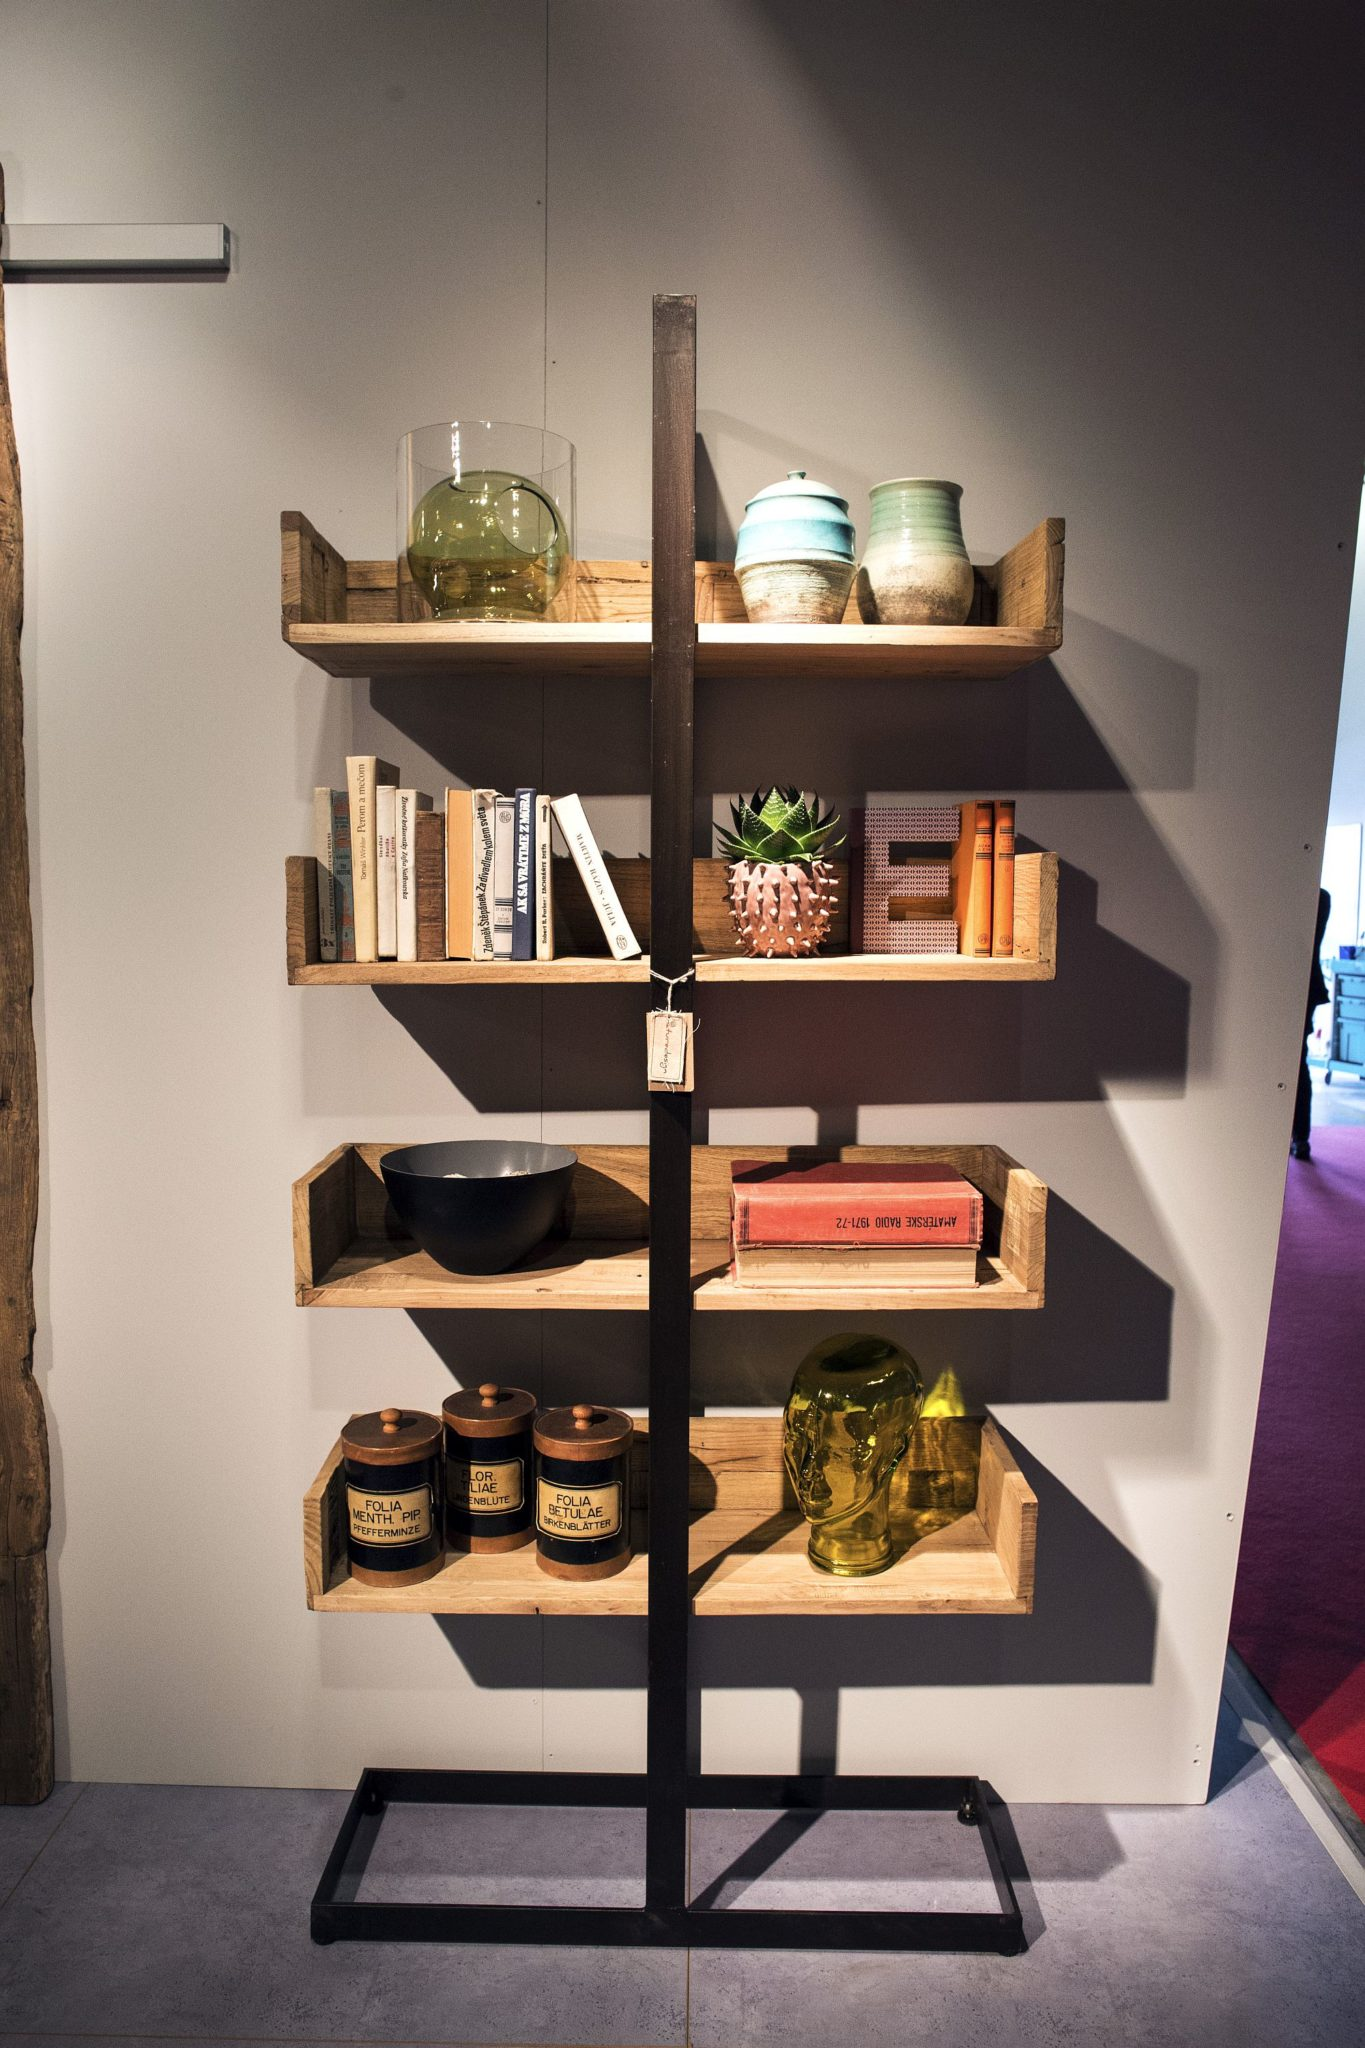 Unique-standalone-shelf-in-wood-and-metal-brings-rustic-touch-to-the-space-savvy-home